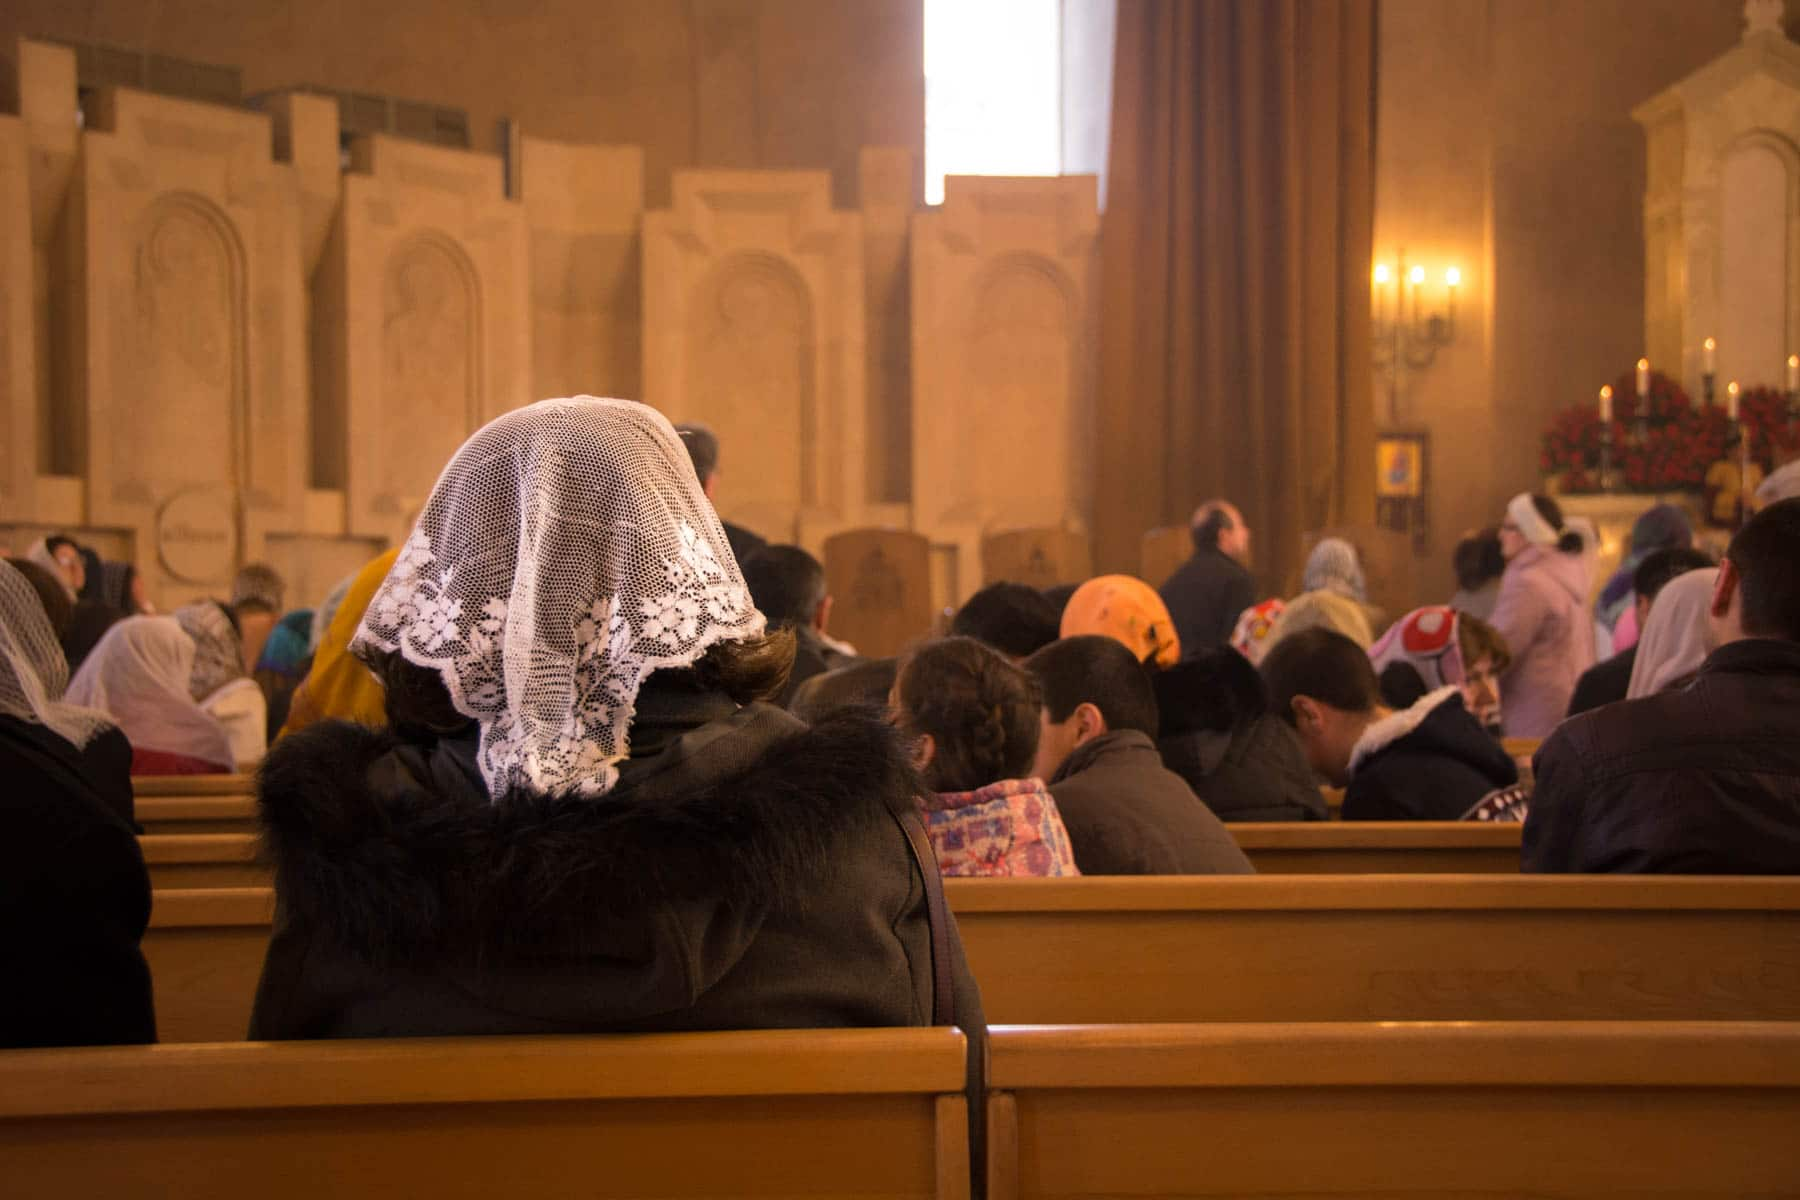 Easter in Armenia - A lace head scarf on a woman at Easter mass in Yerevan, Armenia